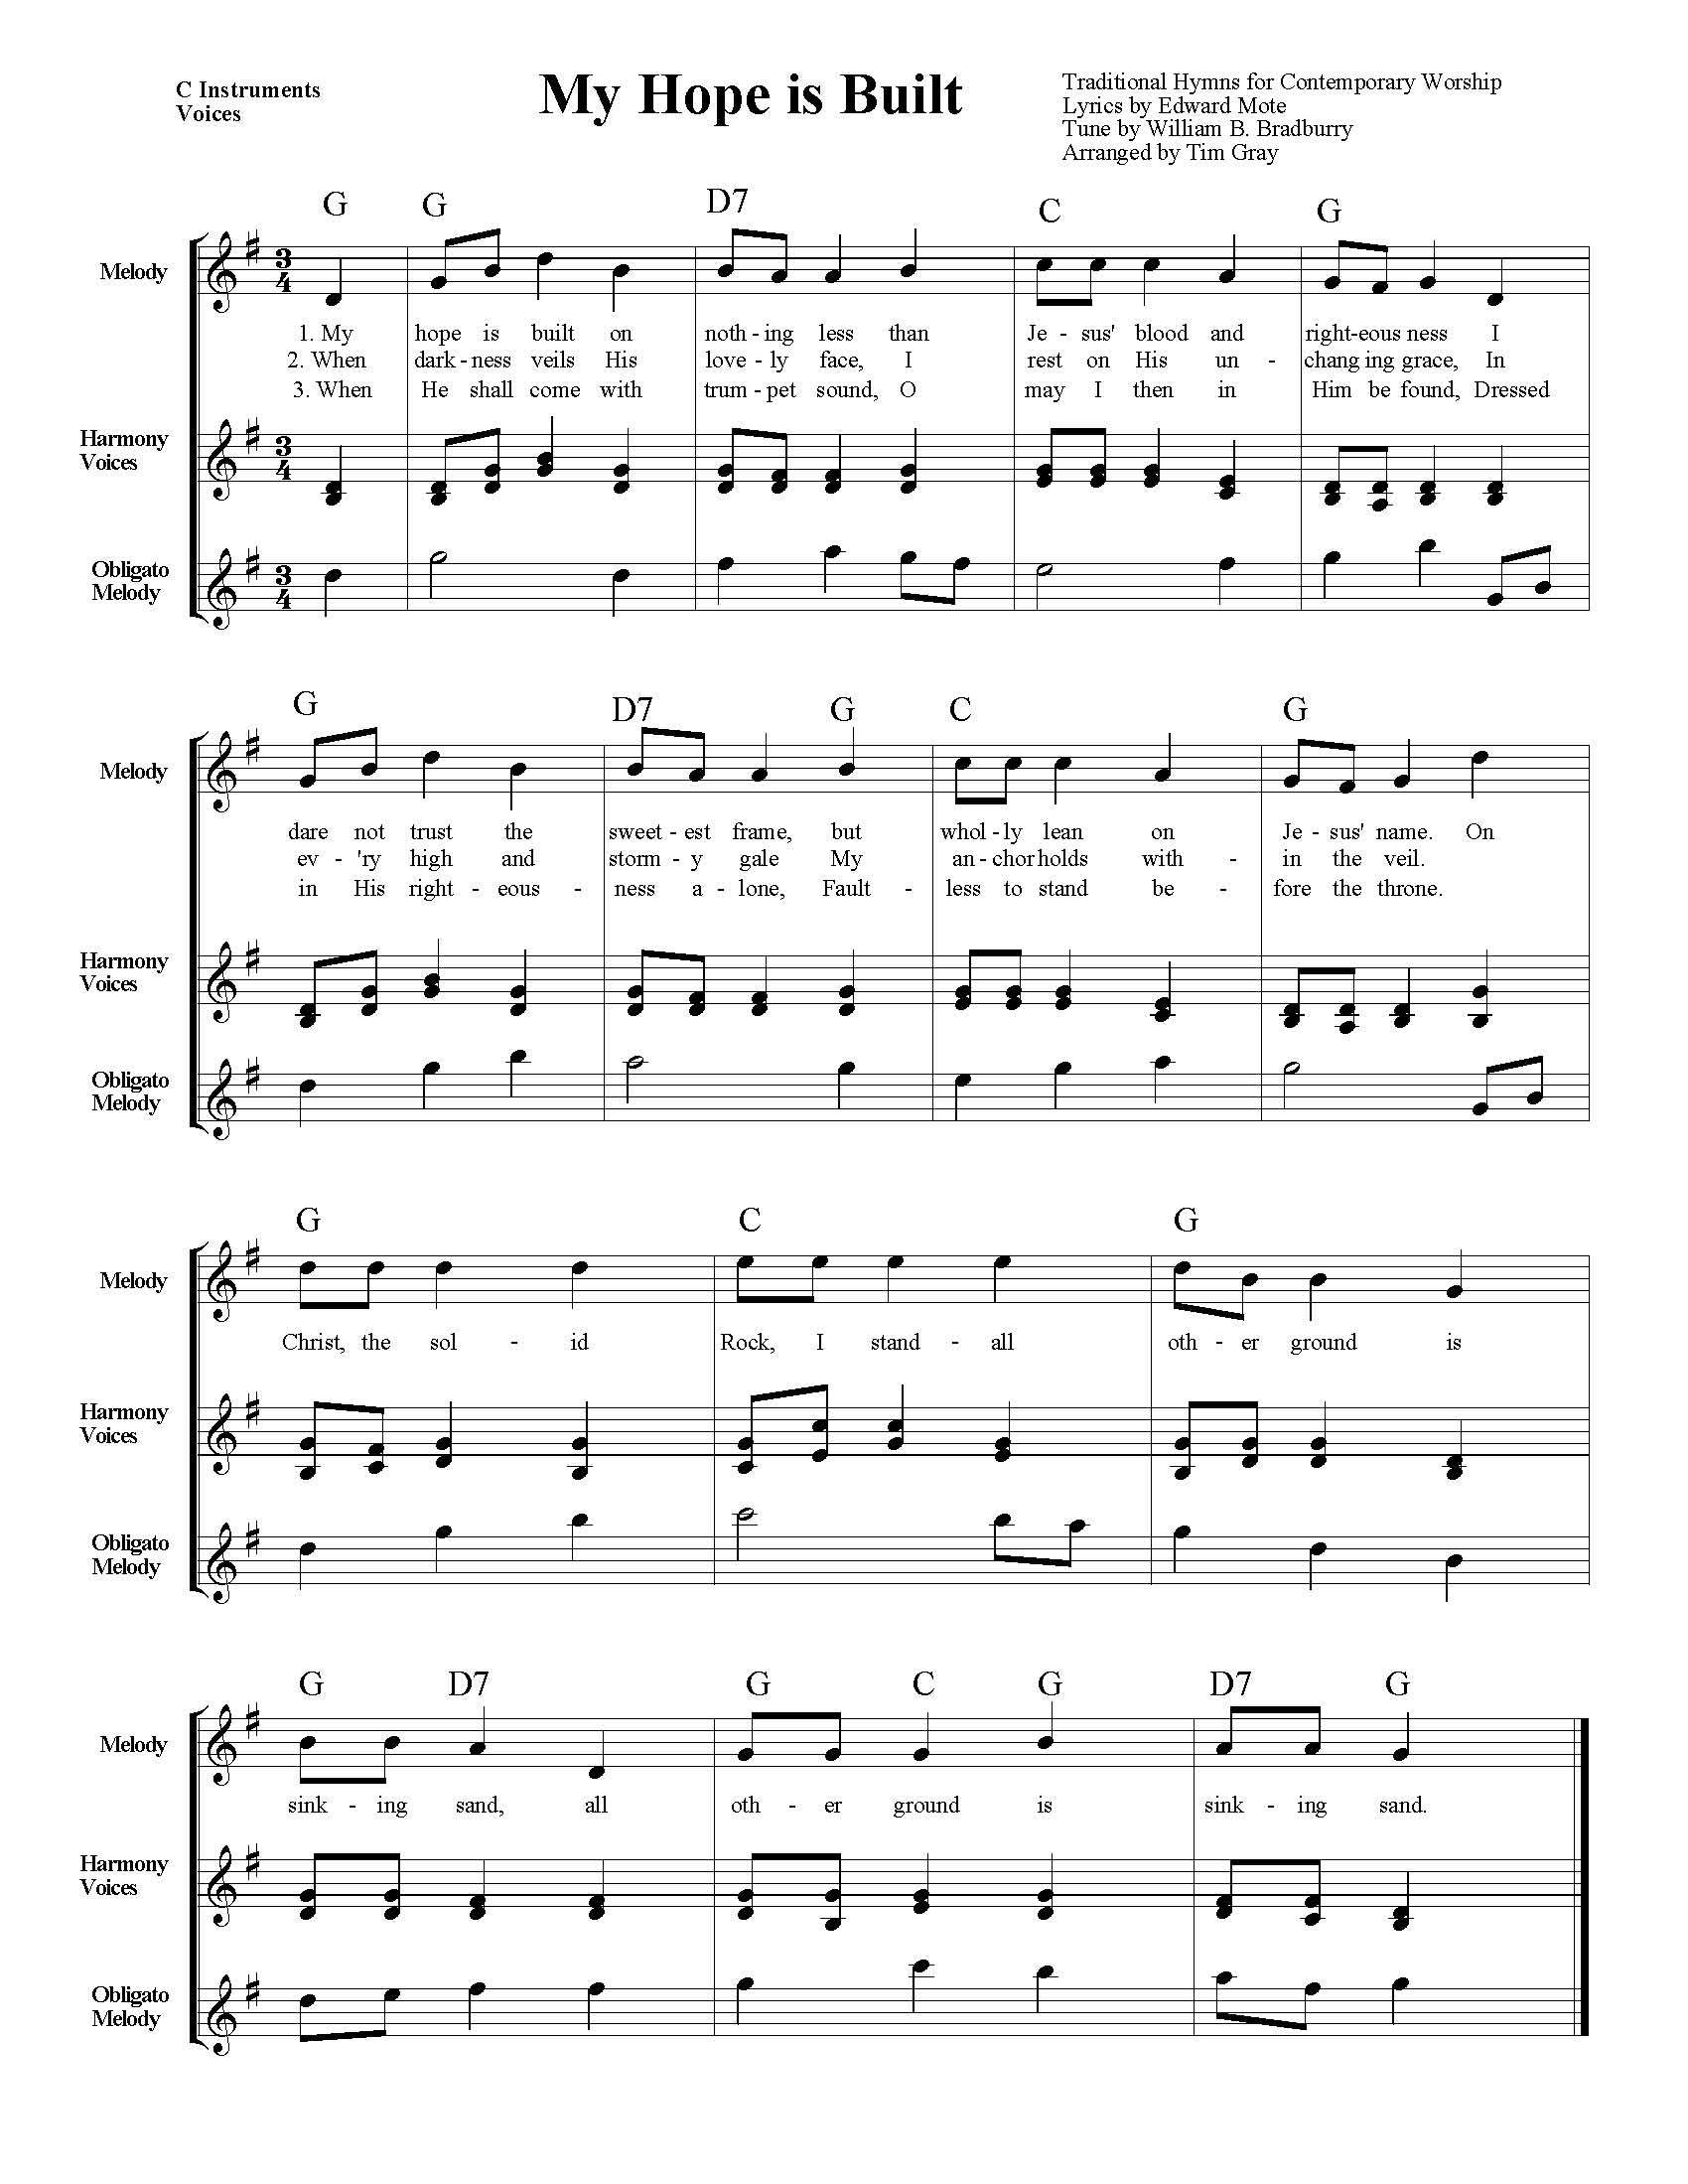 My Hope is Built TH4CW Traditional Hymns for Contemporary Worship sample page on HonoringGodMusic.com